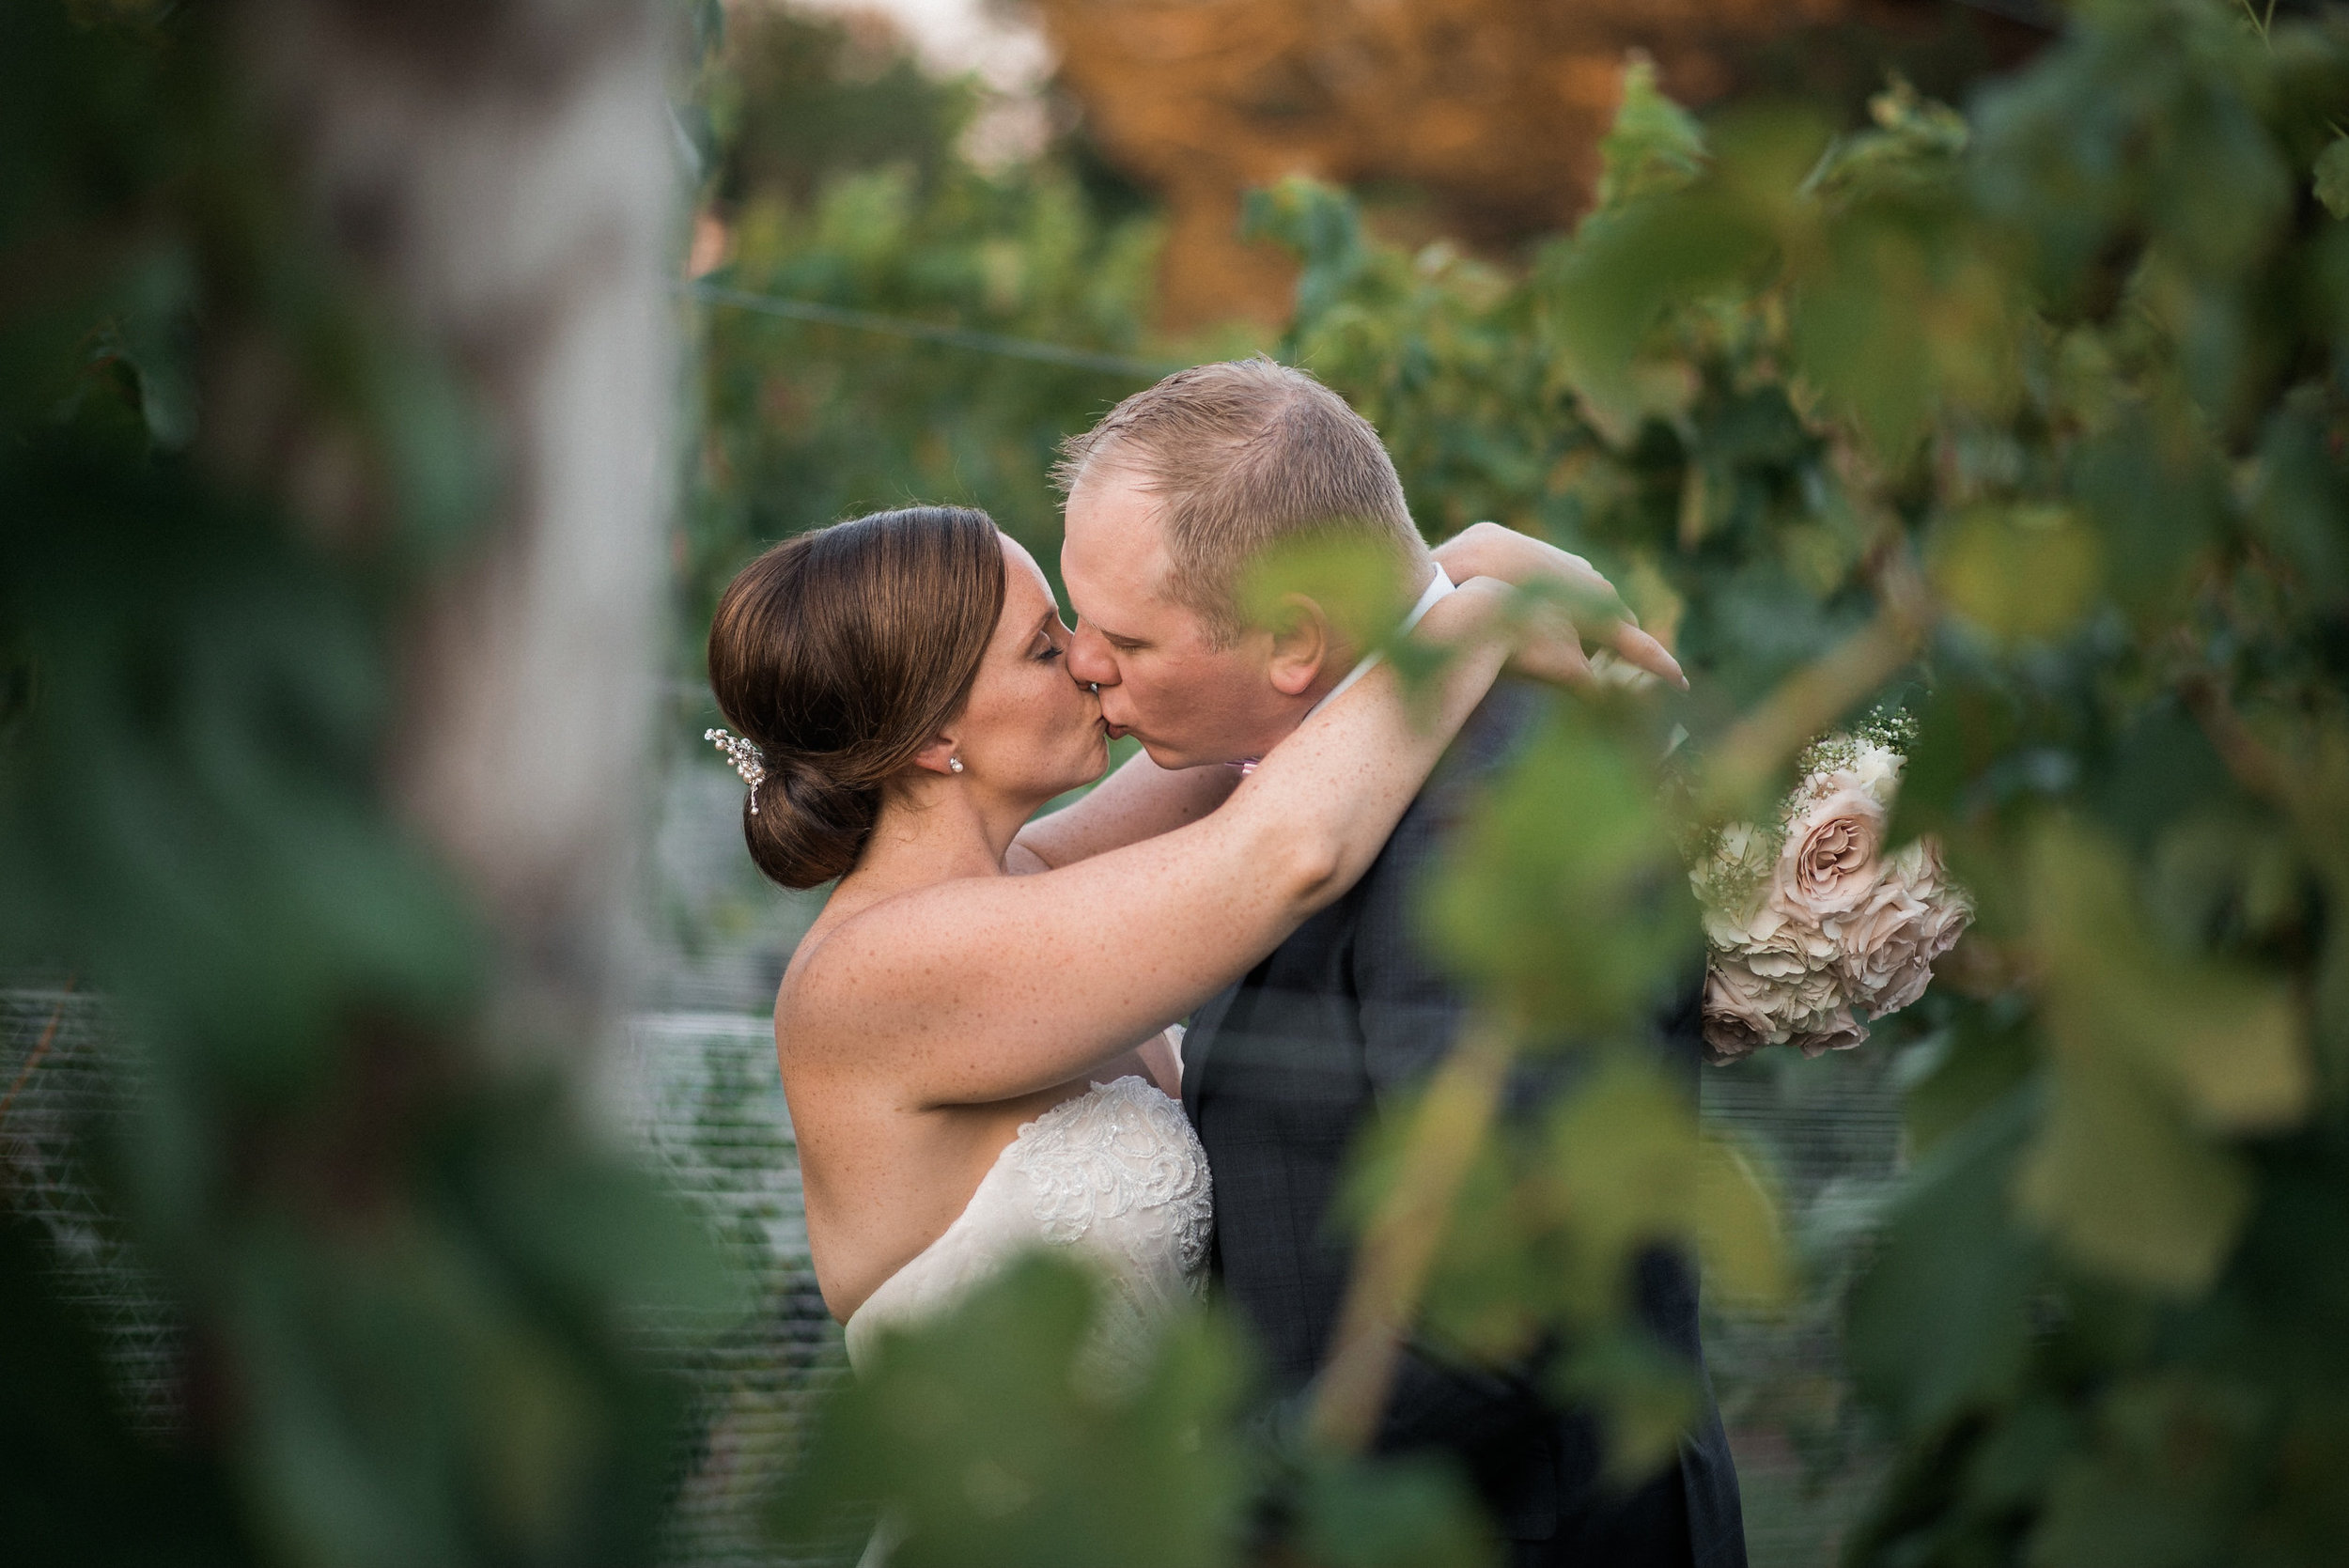 Bride and groom kissing through vines